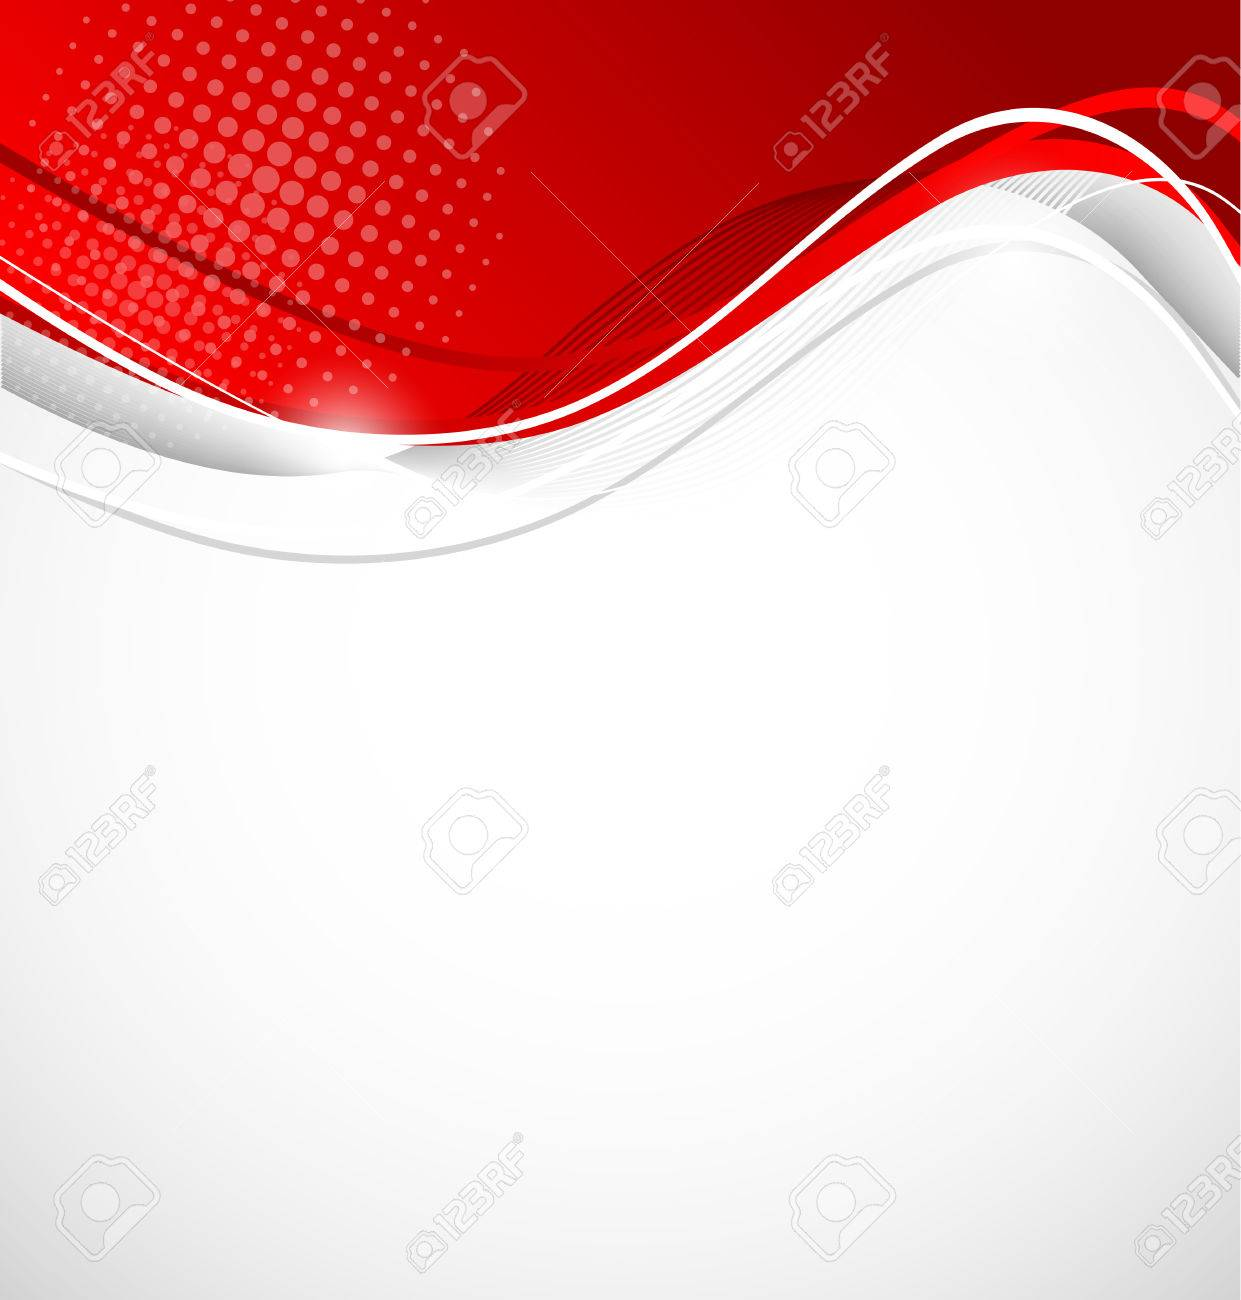 26672720 abstract wavy background in red color